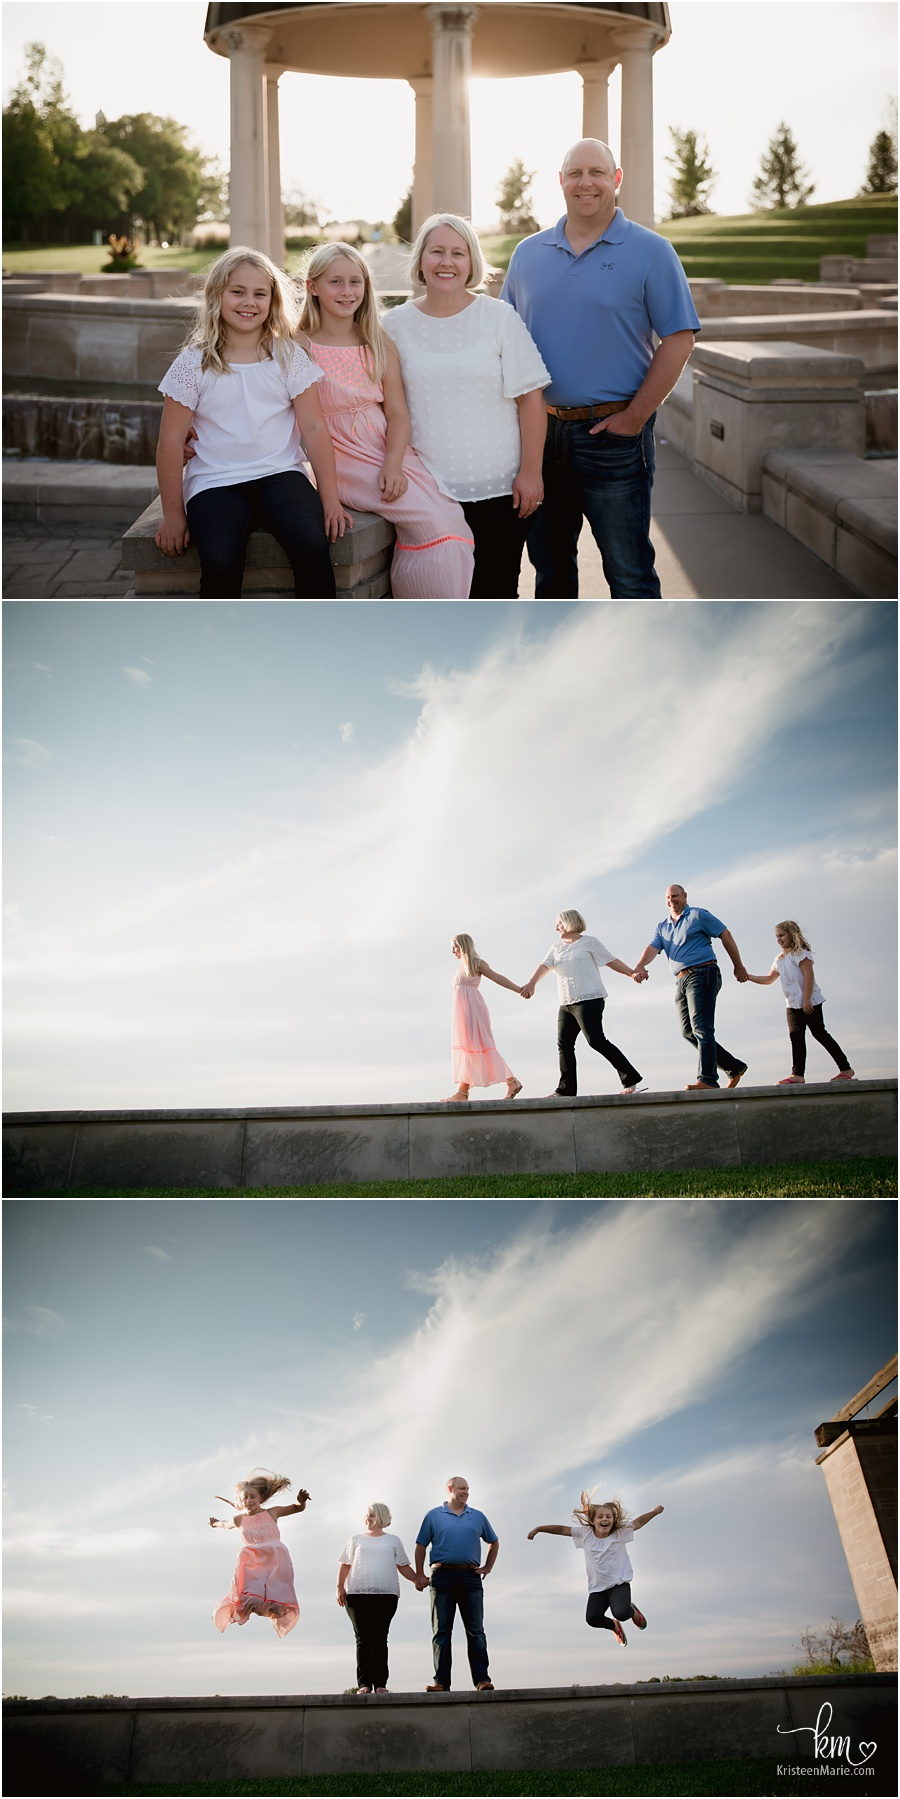 fun family potography poses